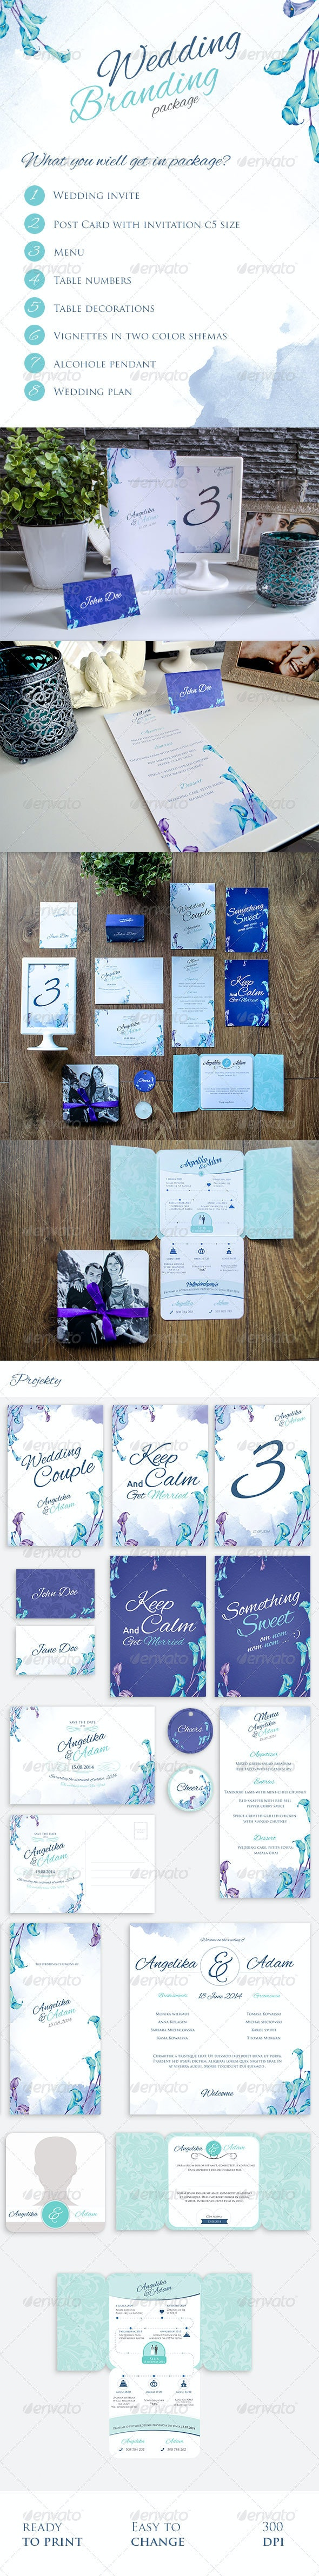 Full Wedding Branding Package - Weddings Cards & Invites